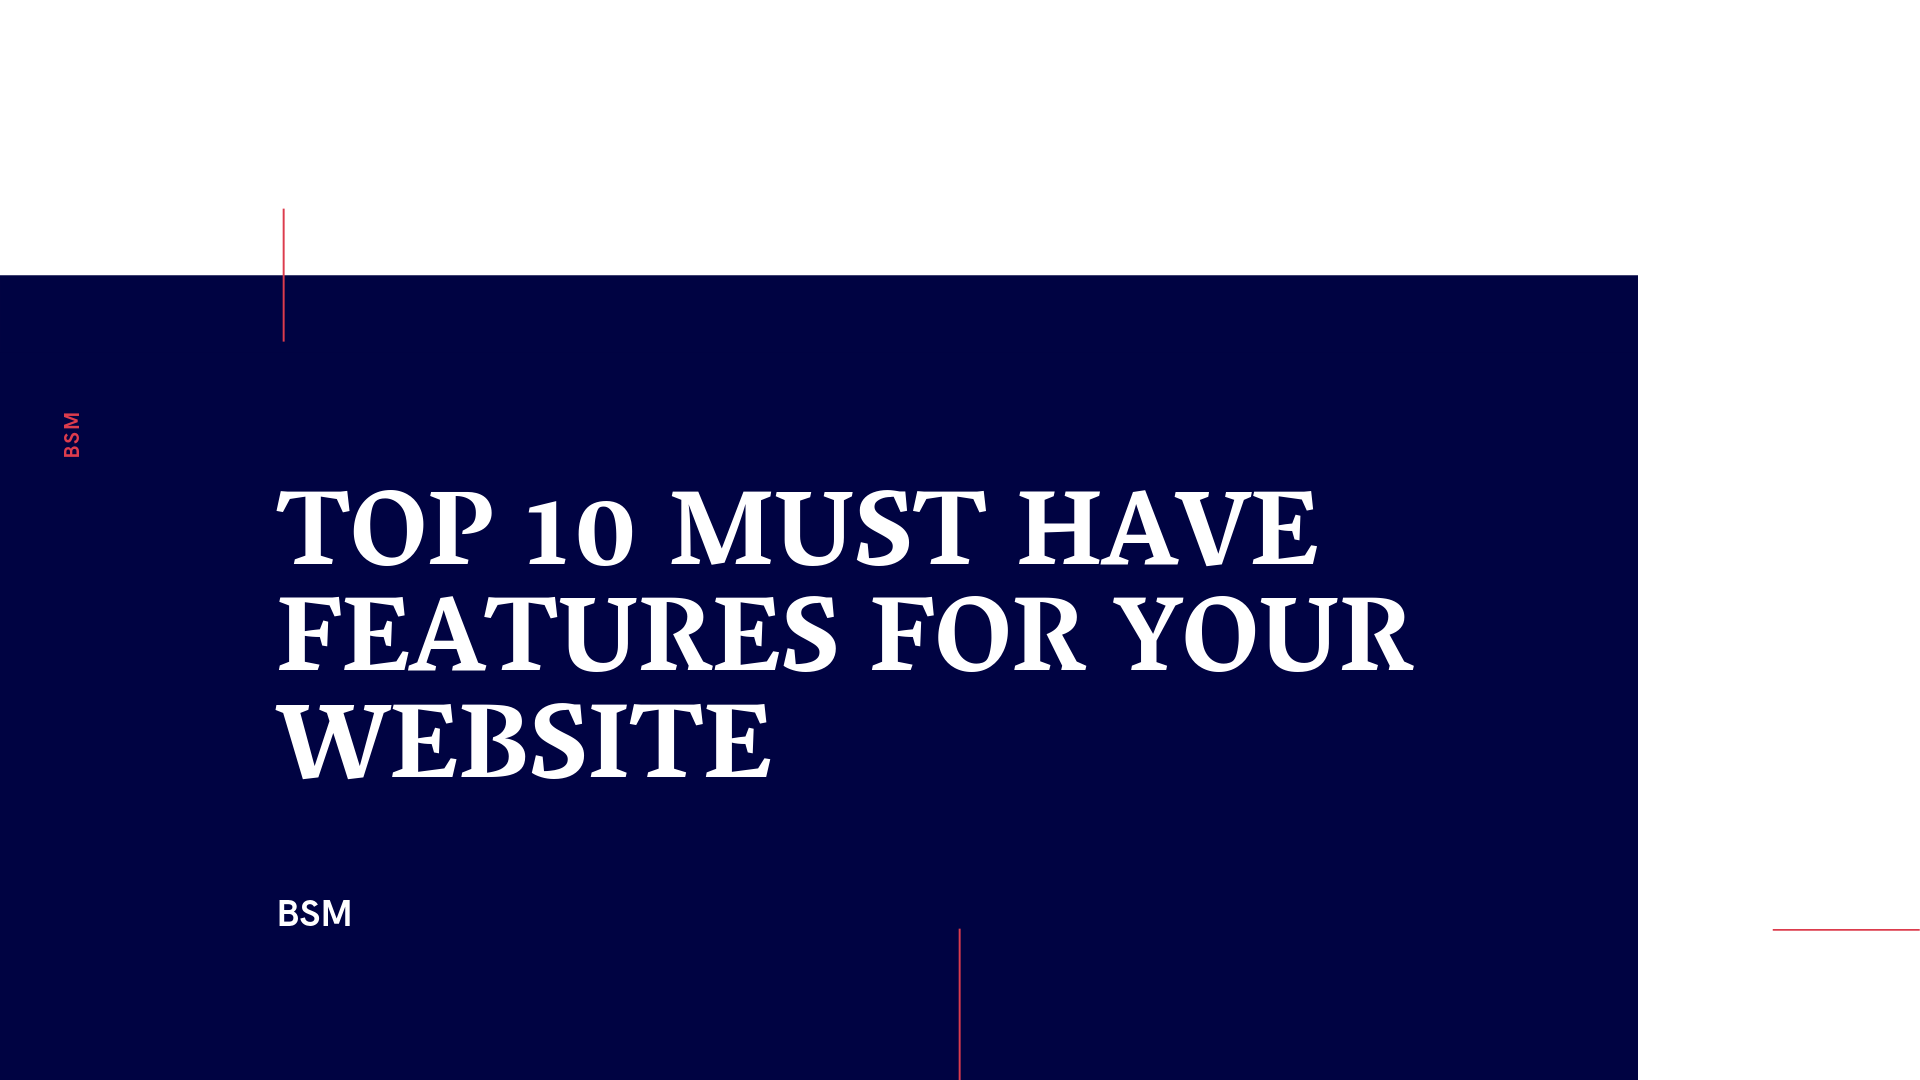 TOP 10 MUST HAVE FEATURES FOR YOUR WEBSITE